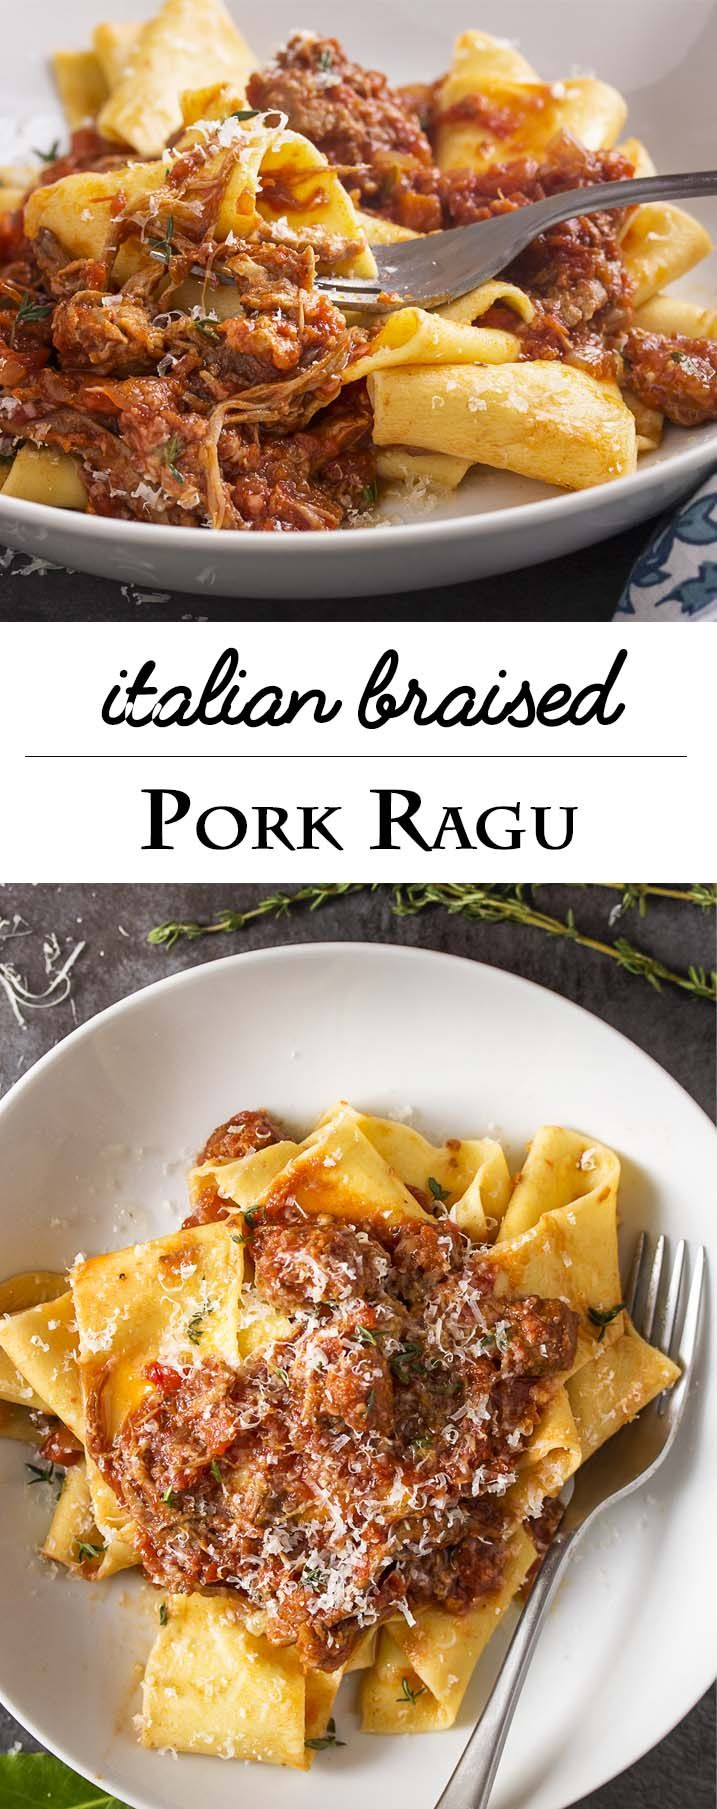 Italian Braised Pork Shoulder Ragu - Just a Little Bit of Bacon